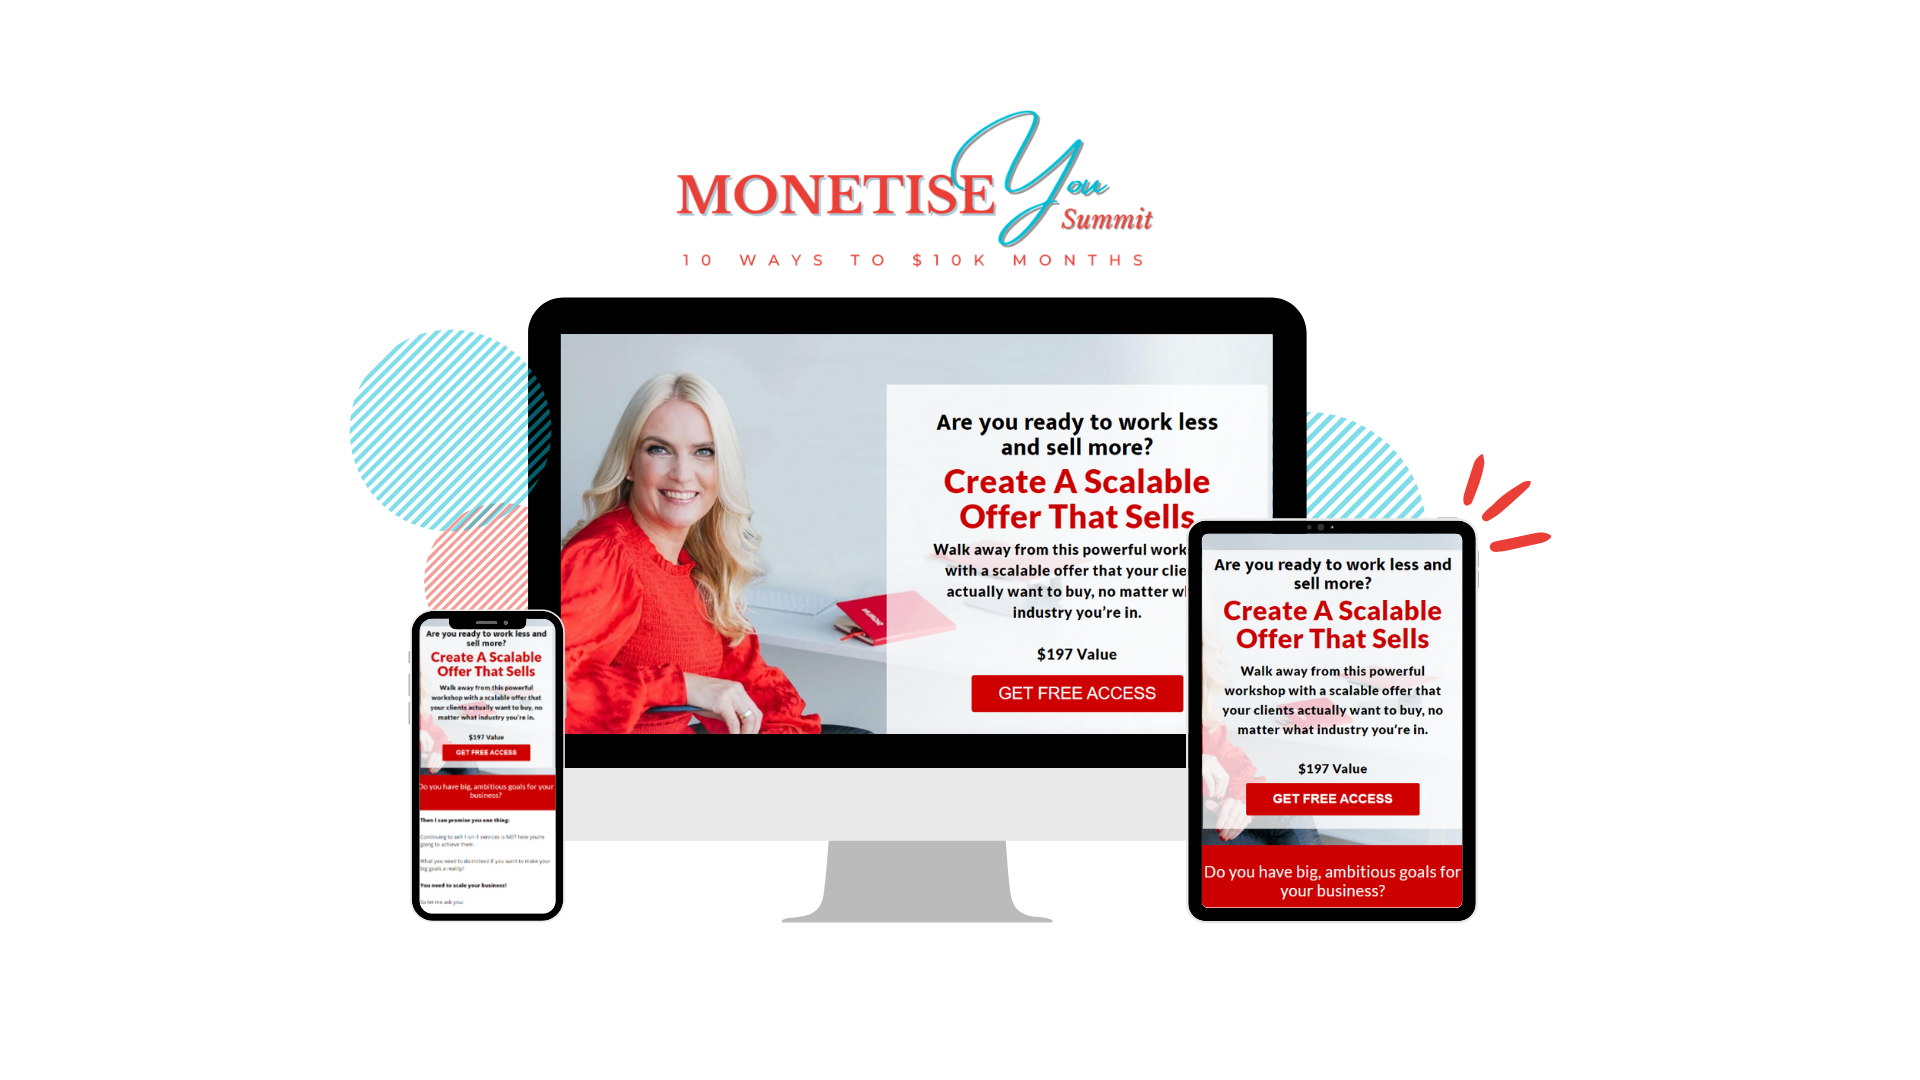 Create a Scalable Offer That Sells - Valued at $197 by Sigrun